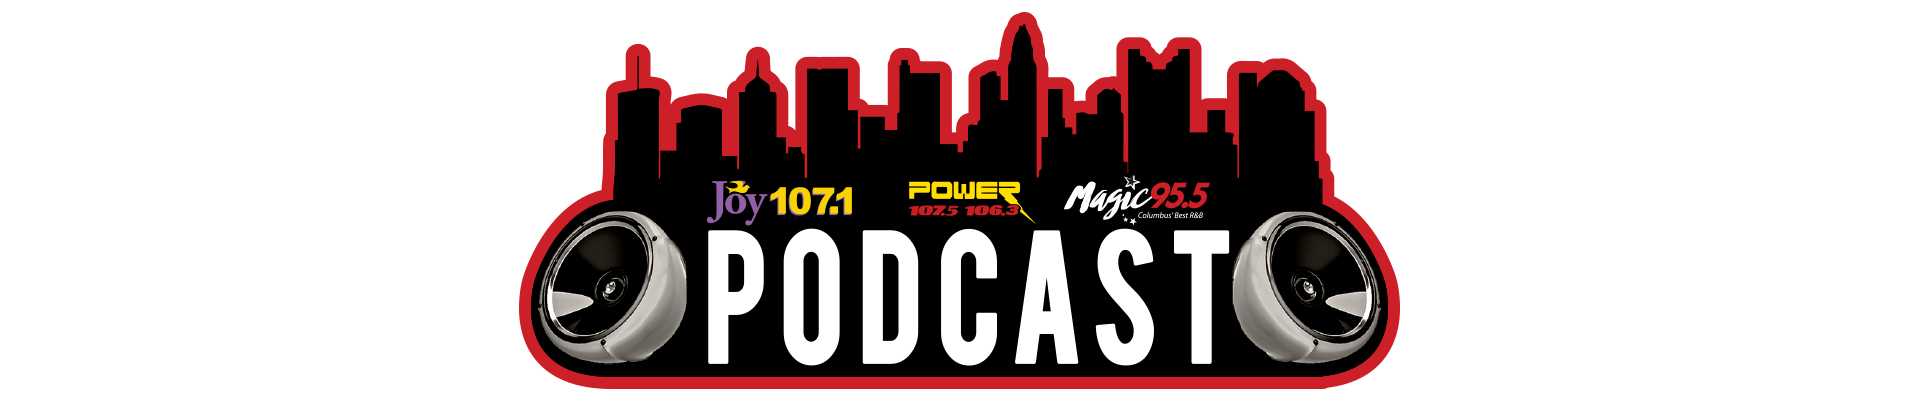 R1 Columbus Podcast Header Copy